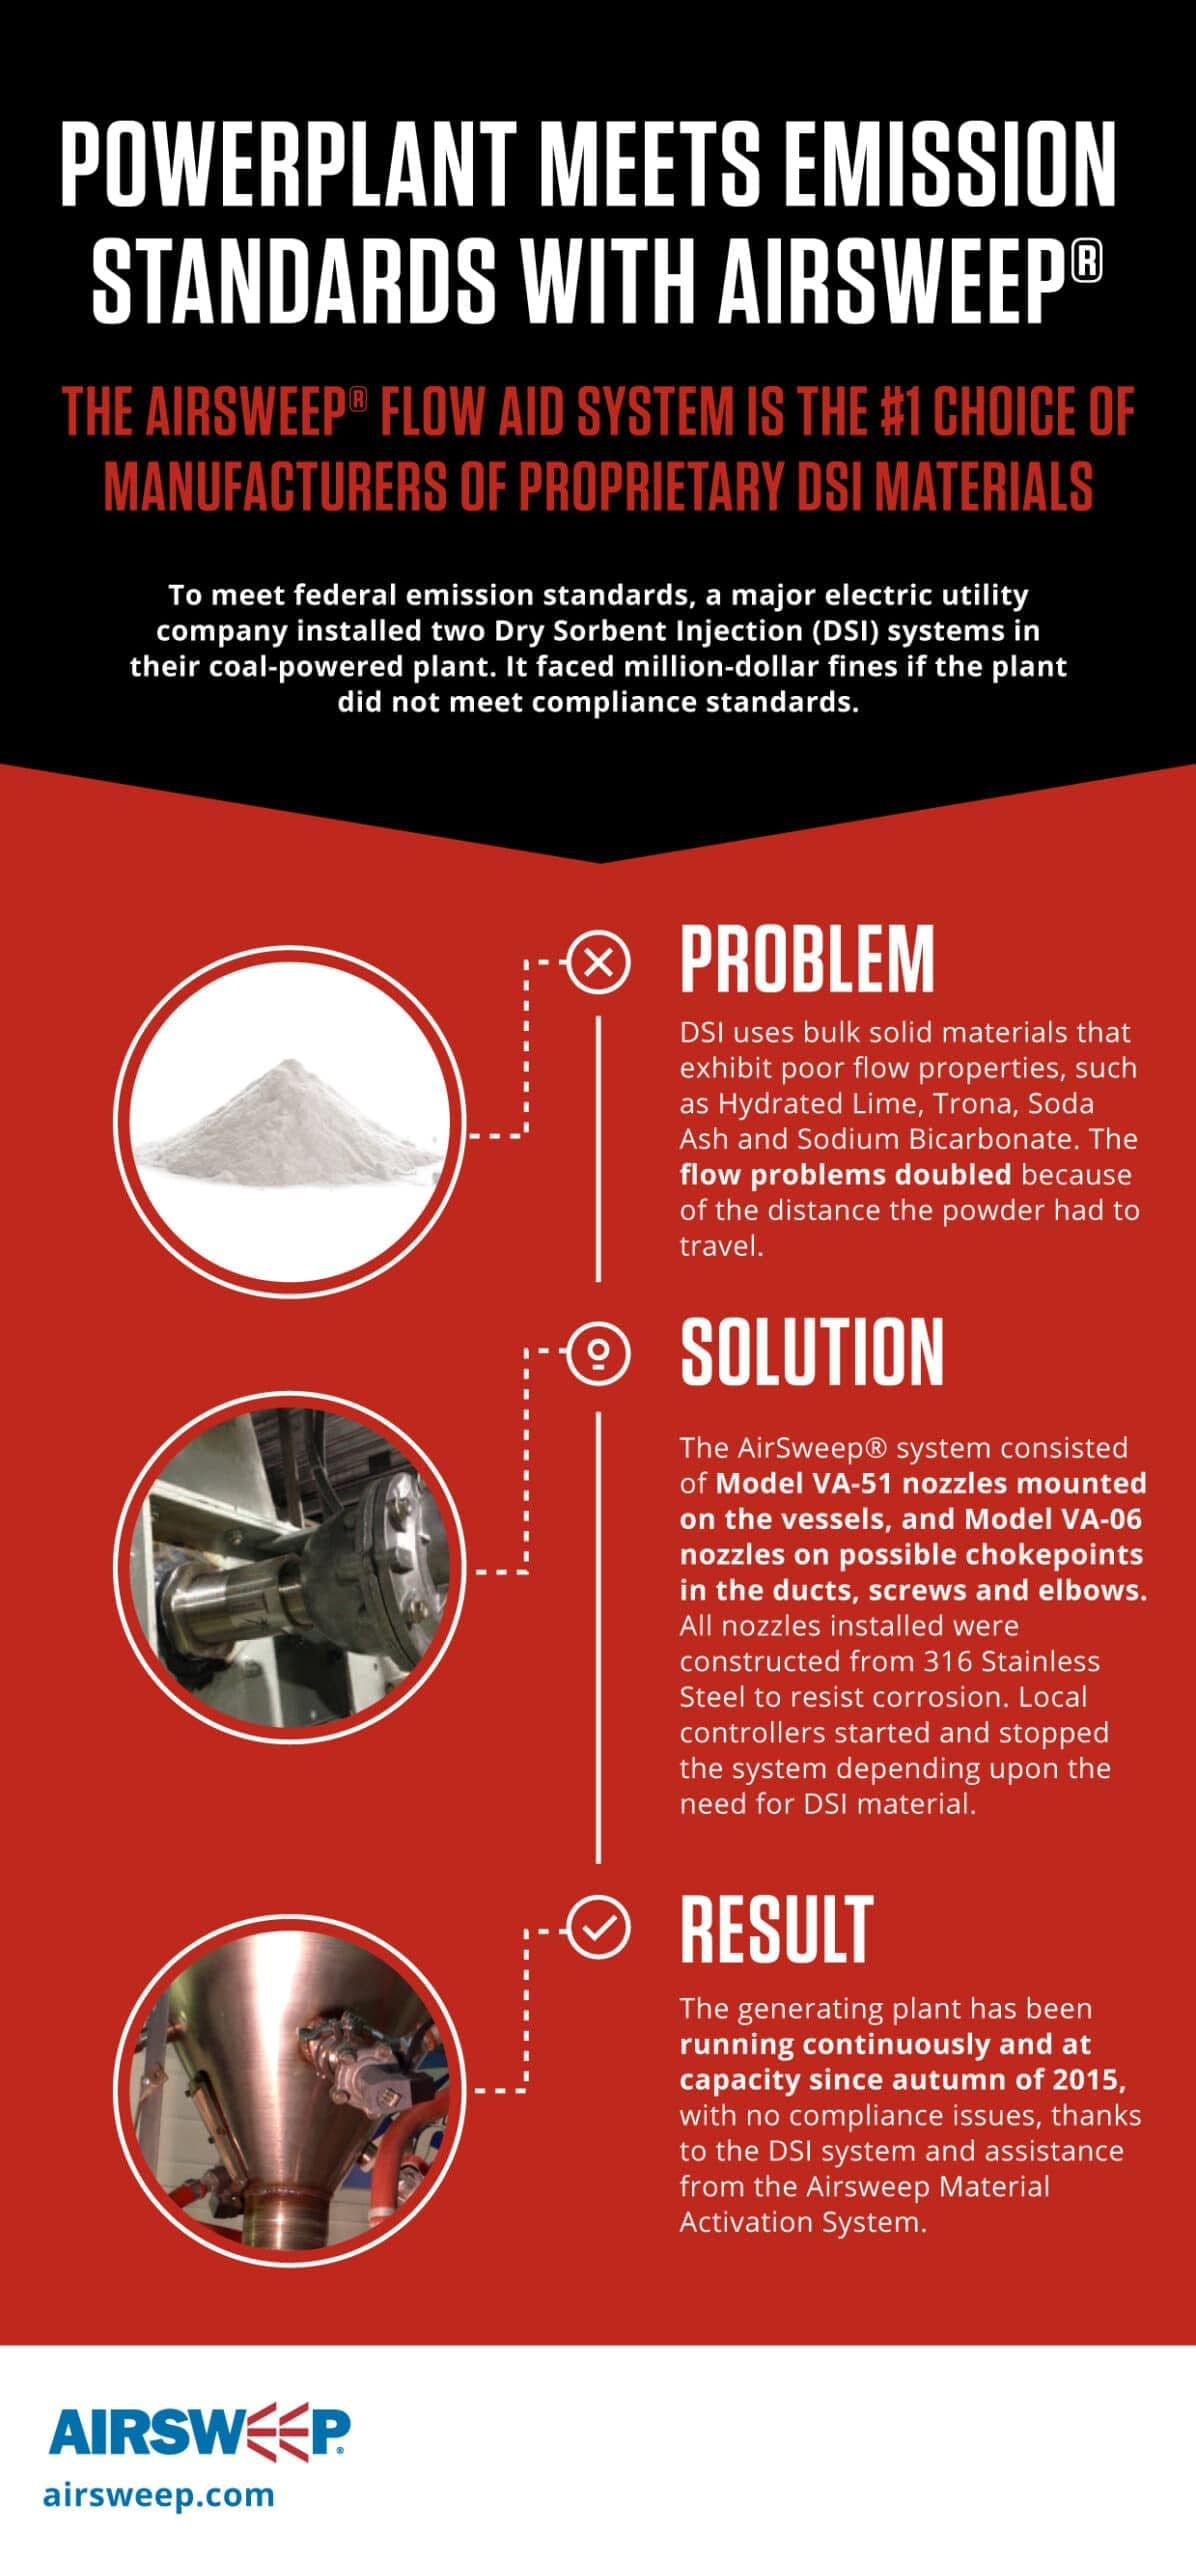 A major electric utility solved its Dry Sorbent Injection (DSI) material flow problem with AirSweep.